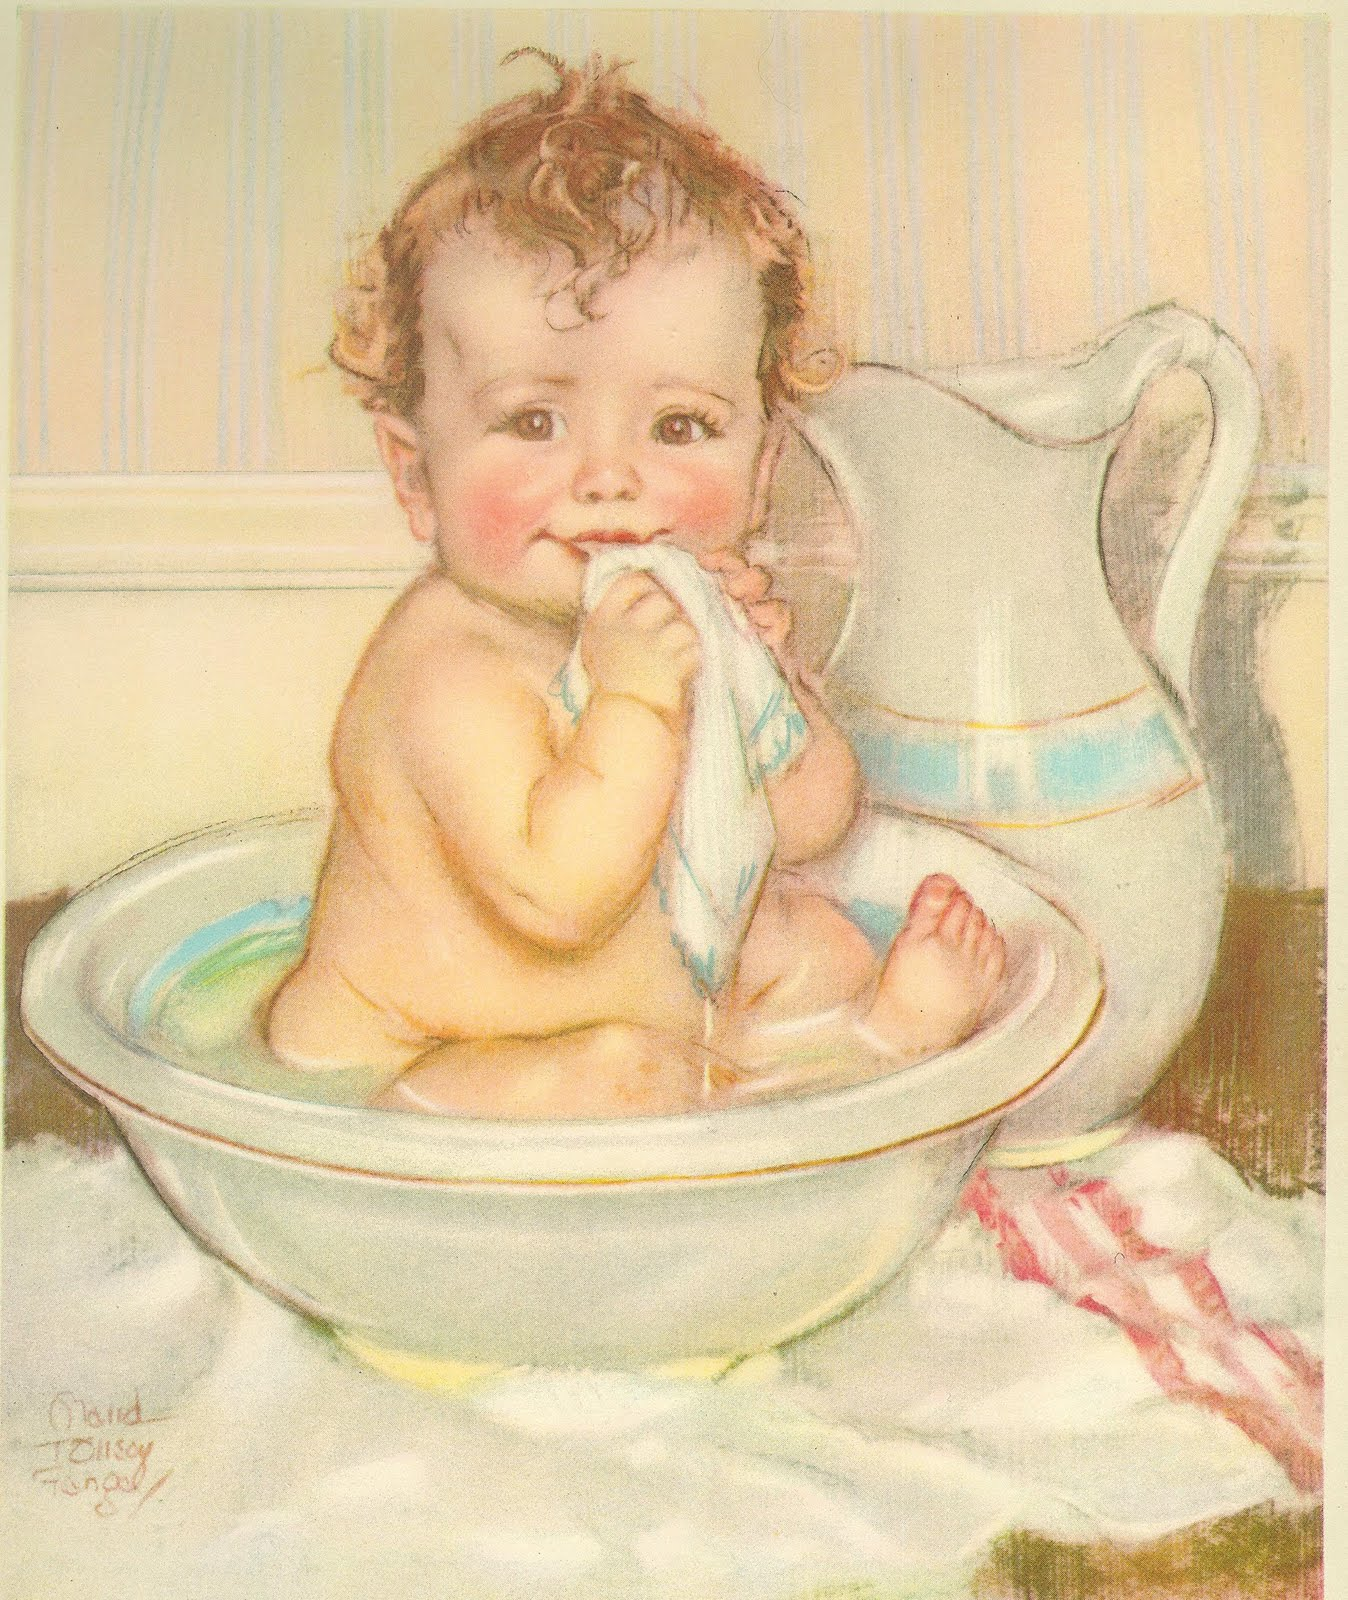 Vintage children images to share